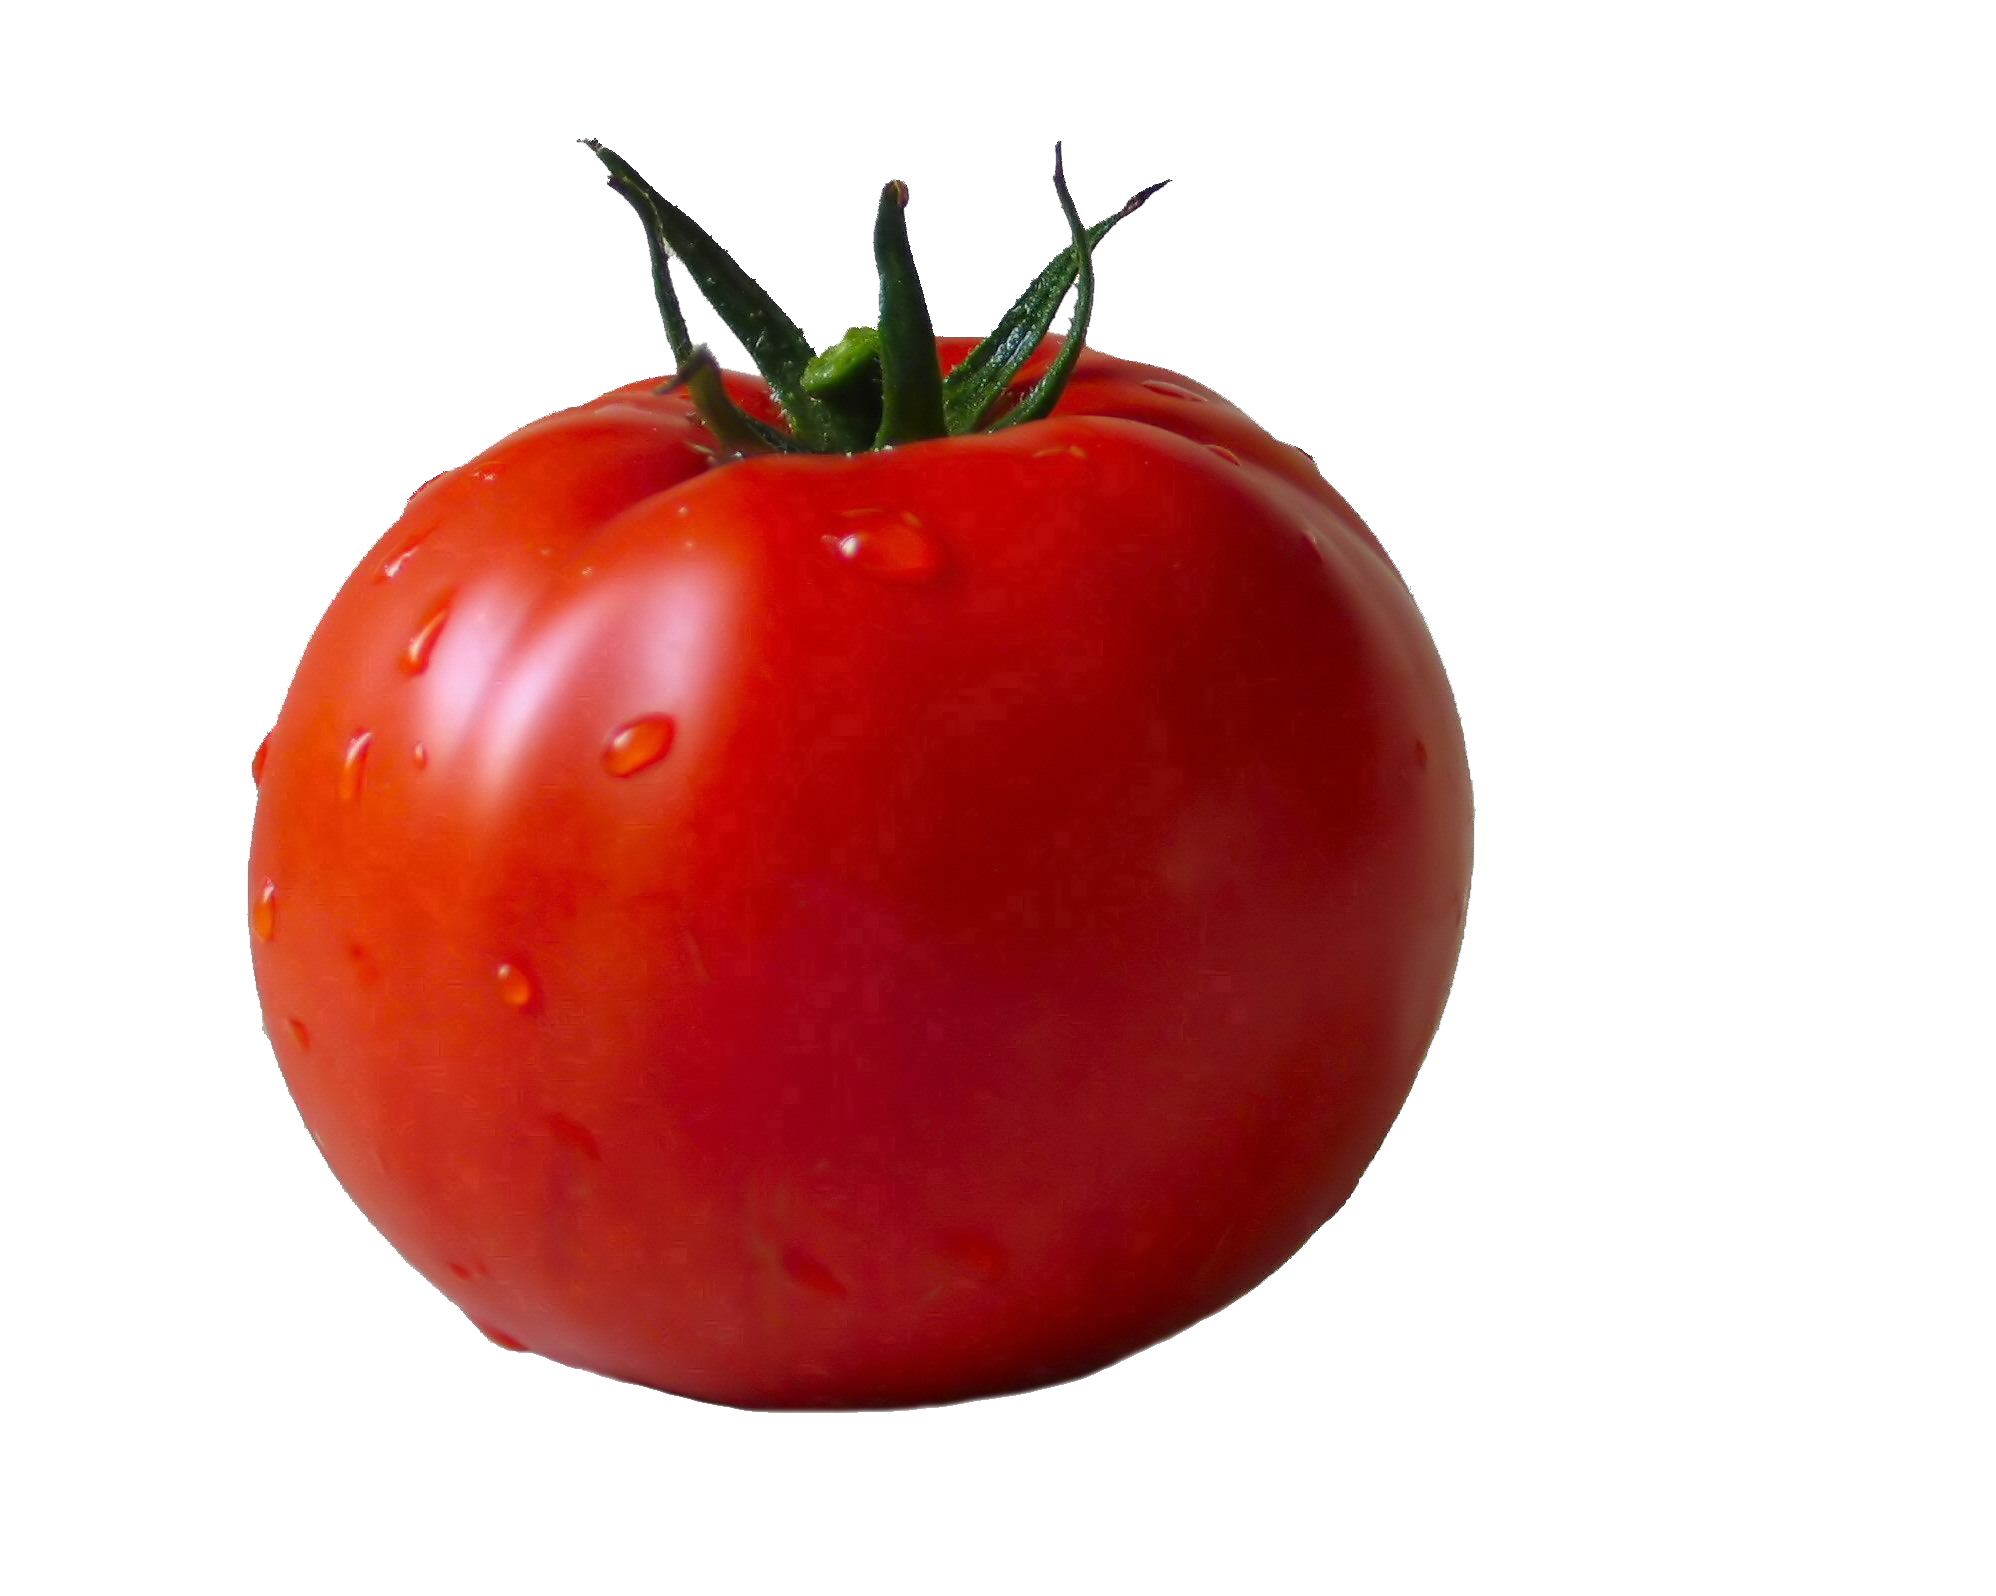 Tomato clipart png. Tomatoes mart